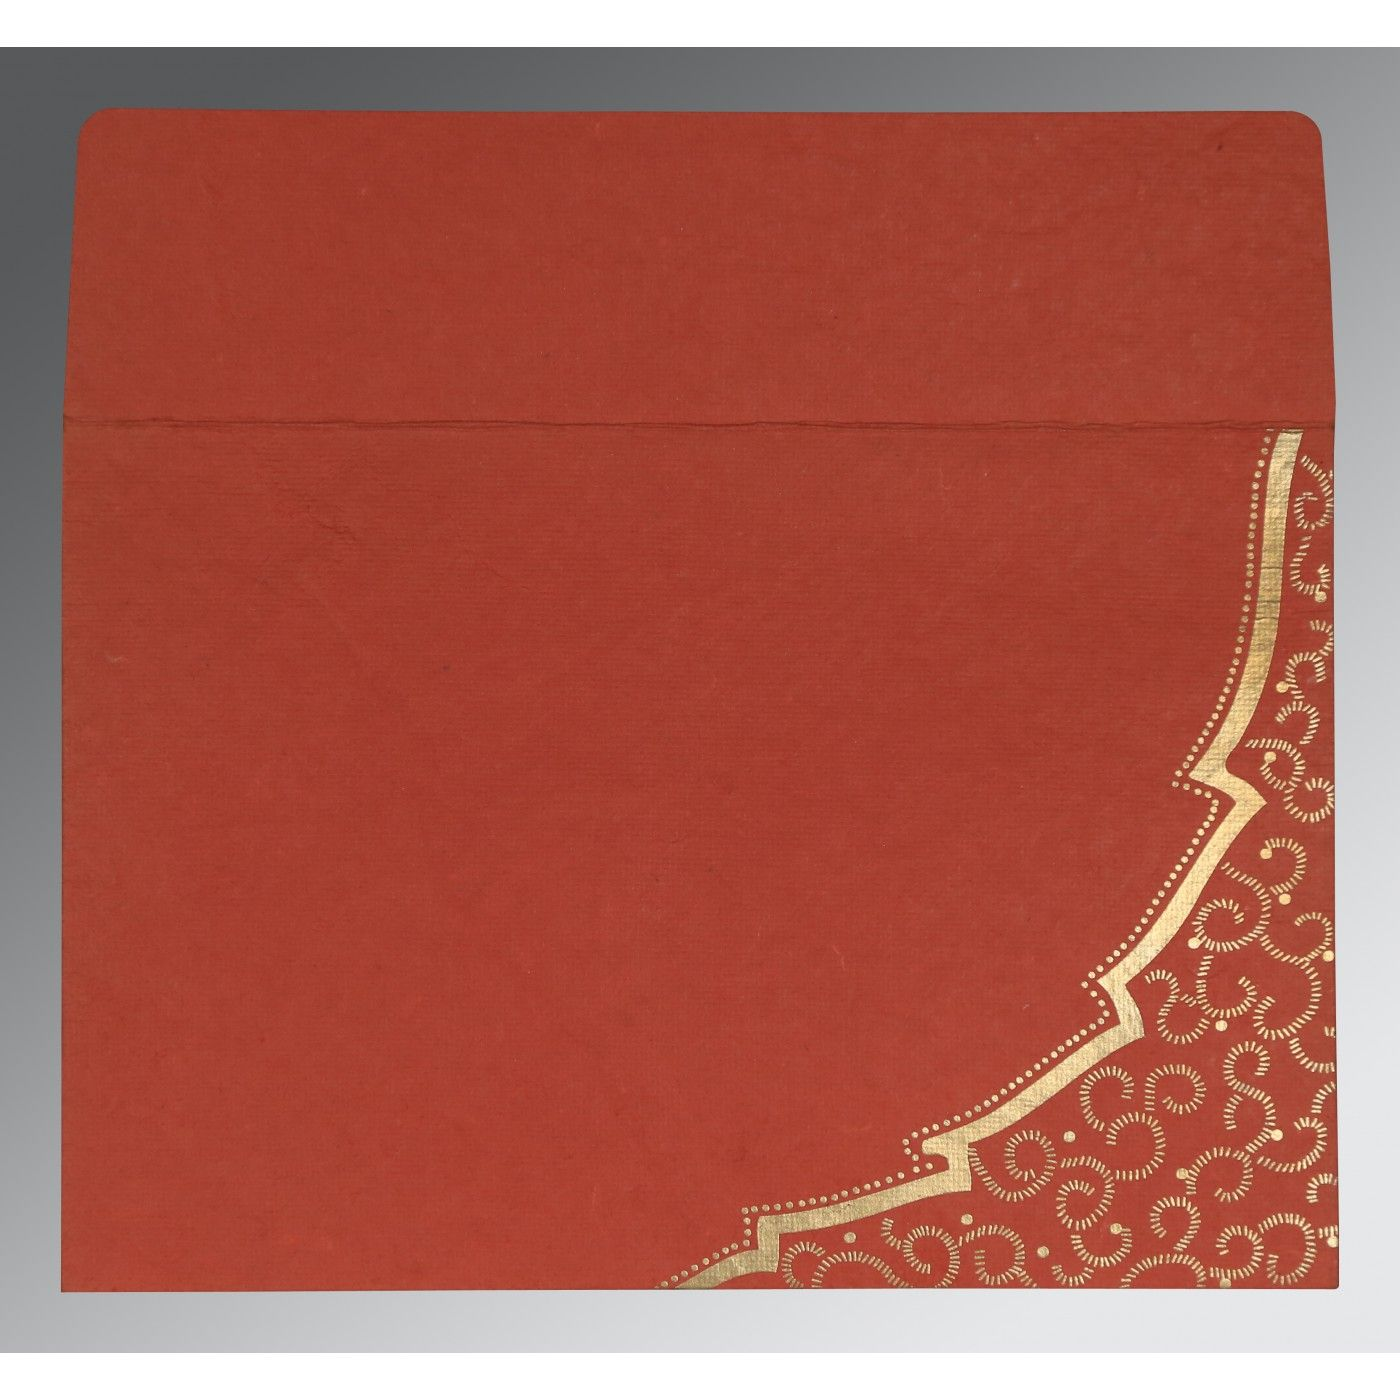 BRICK RED HANDMADE COTTON FLORAL THEMED - FOIL STAMPED WEDDING CARD : CG-8219I - IndianWeddingCards